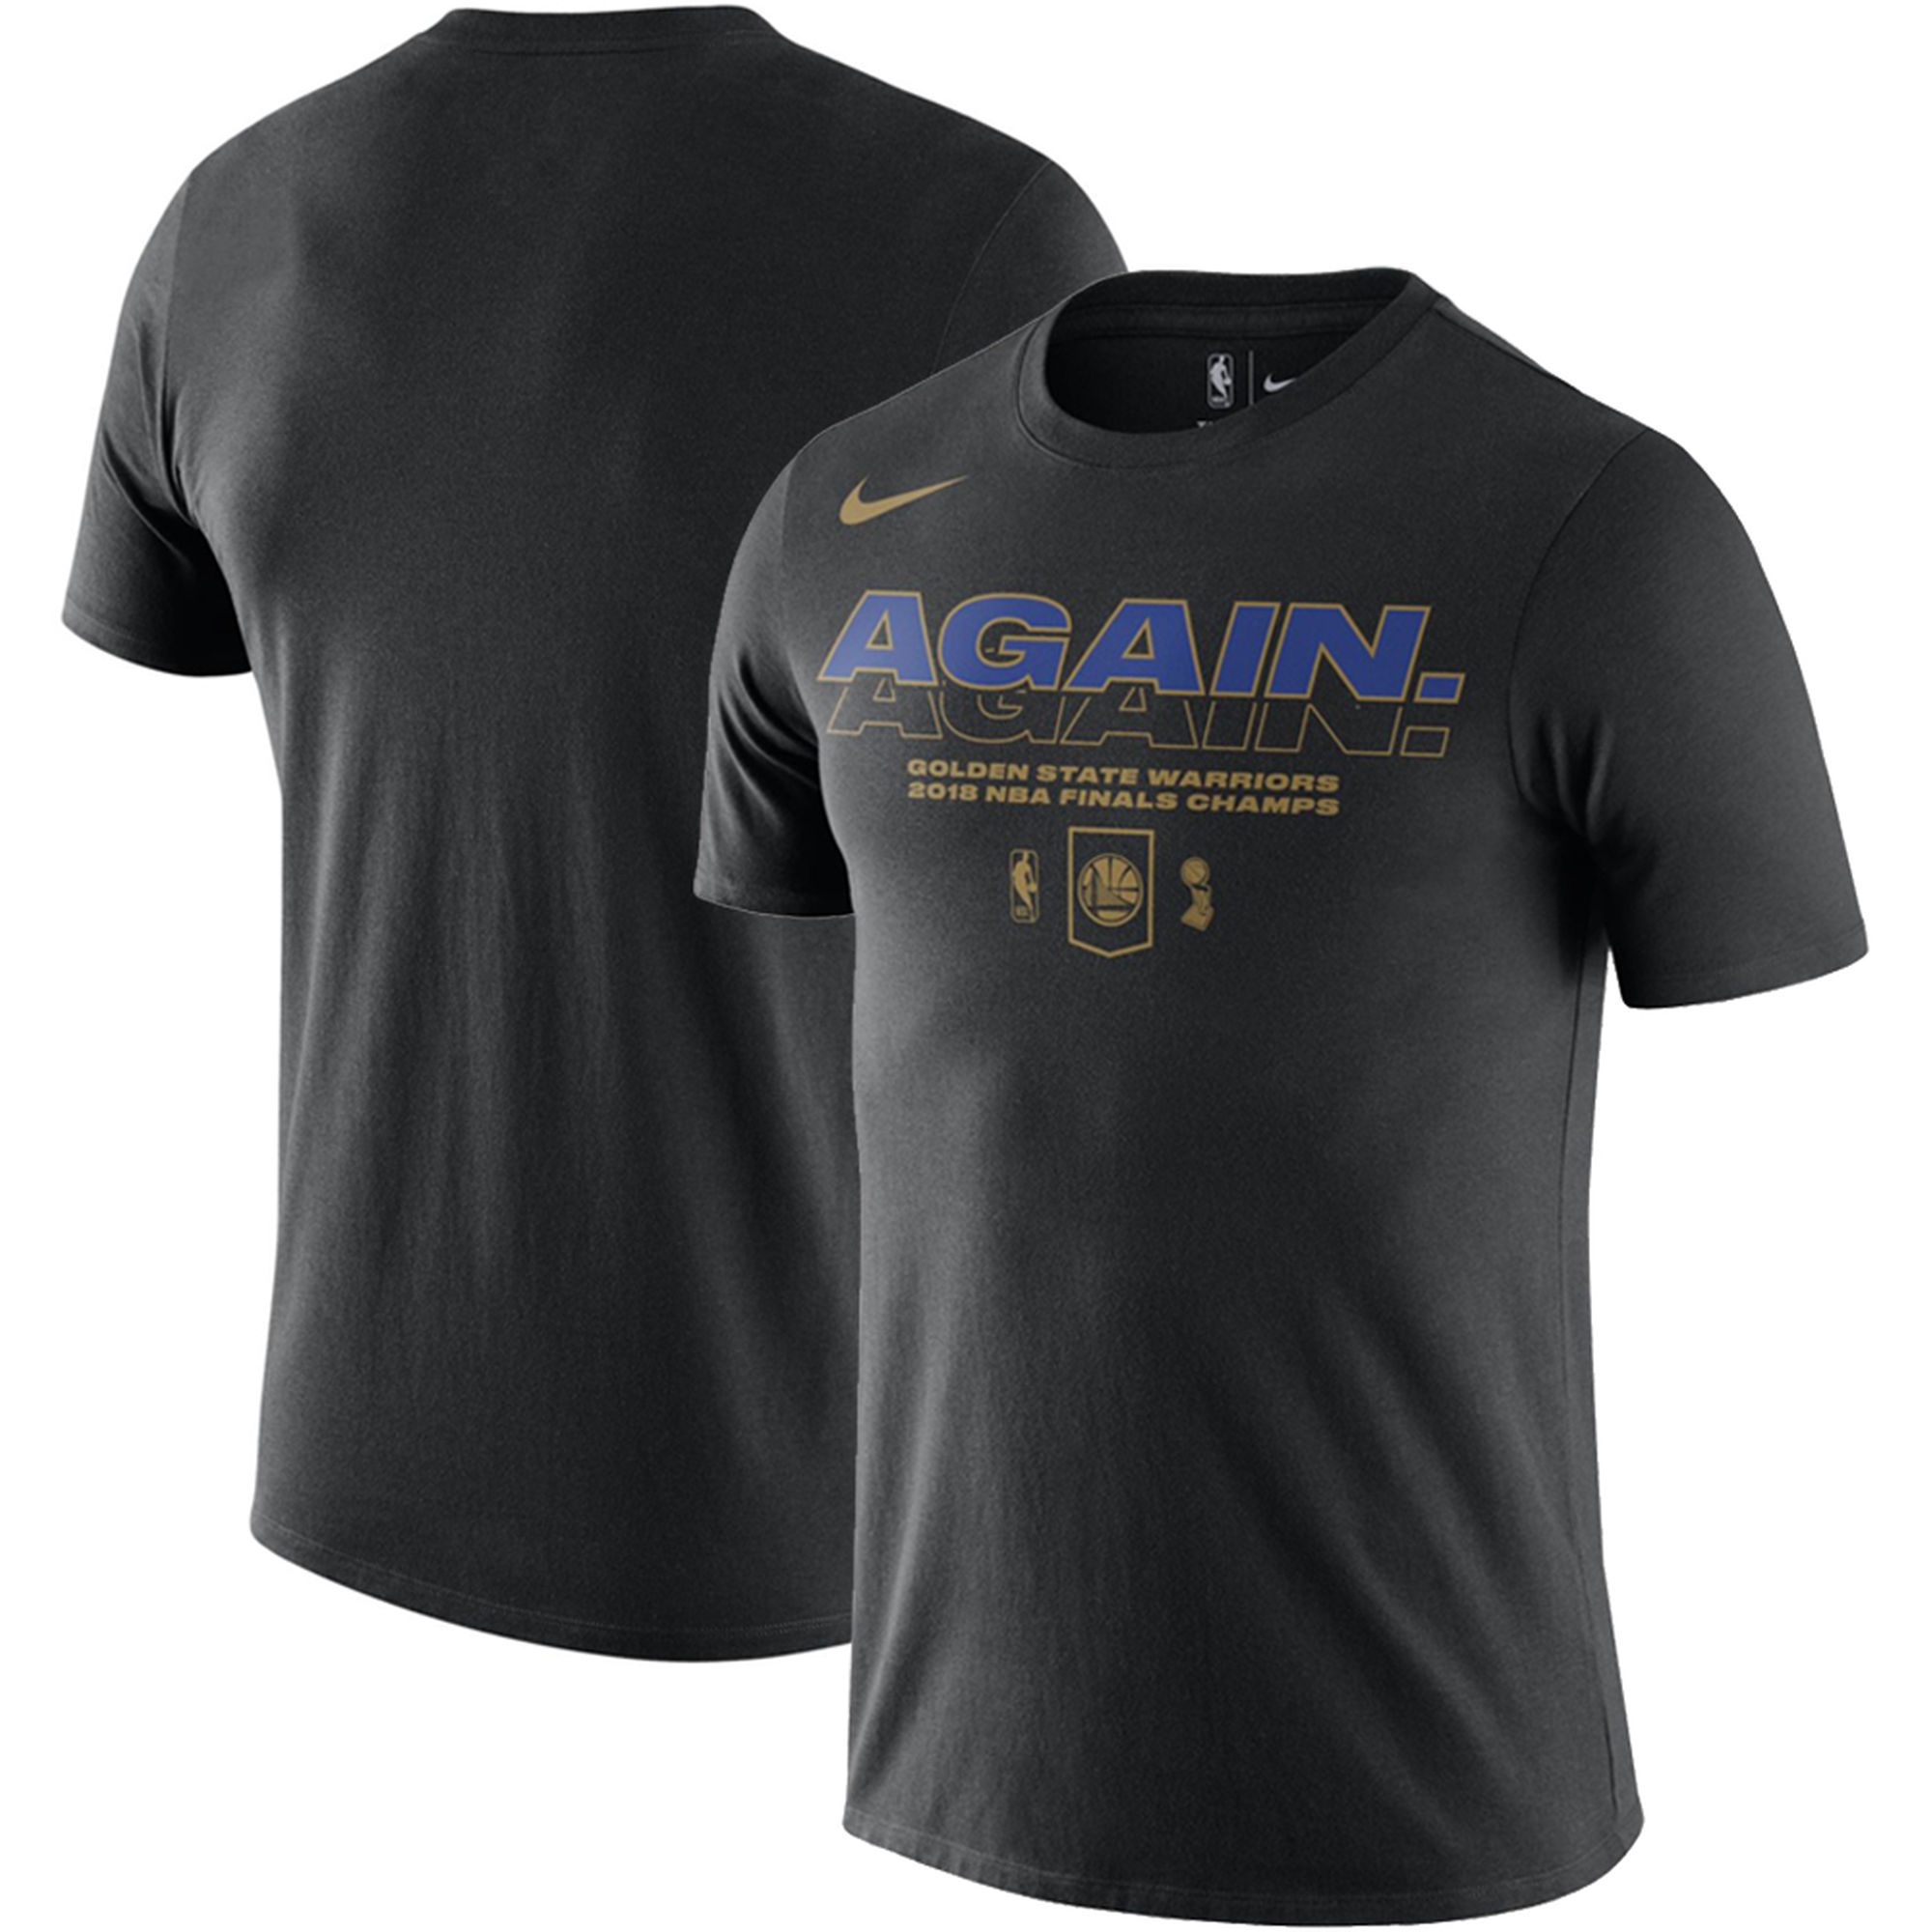 Golden State Warriors Nike 2018 NBA Finals Champions Celebration Mantra DFCT T-Shirt Black